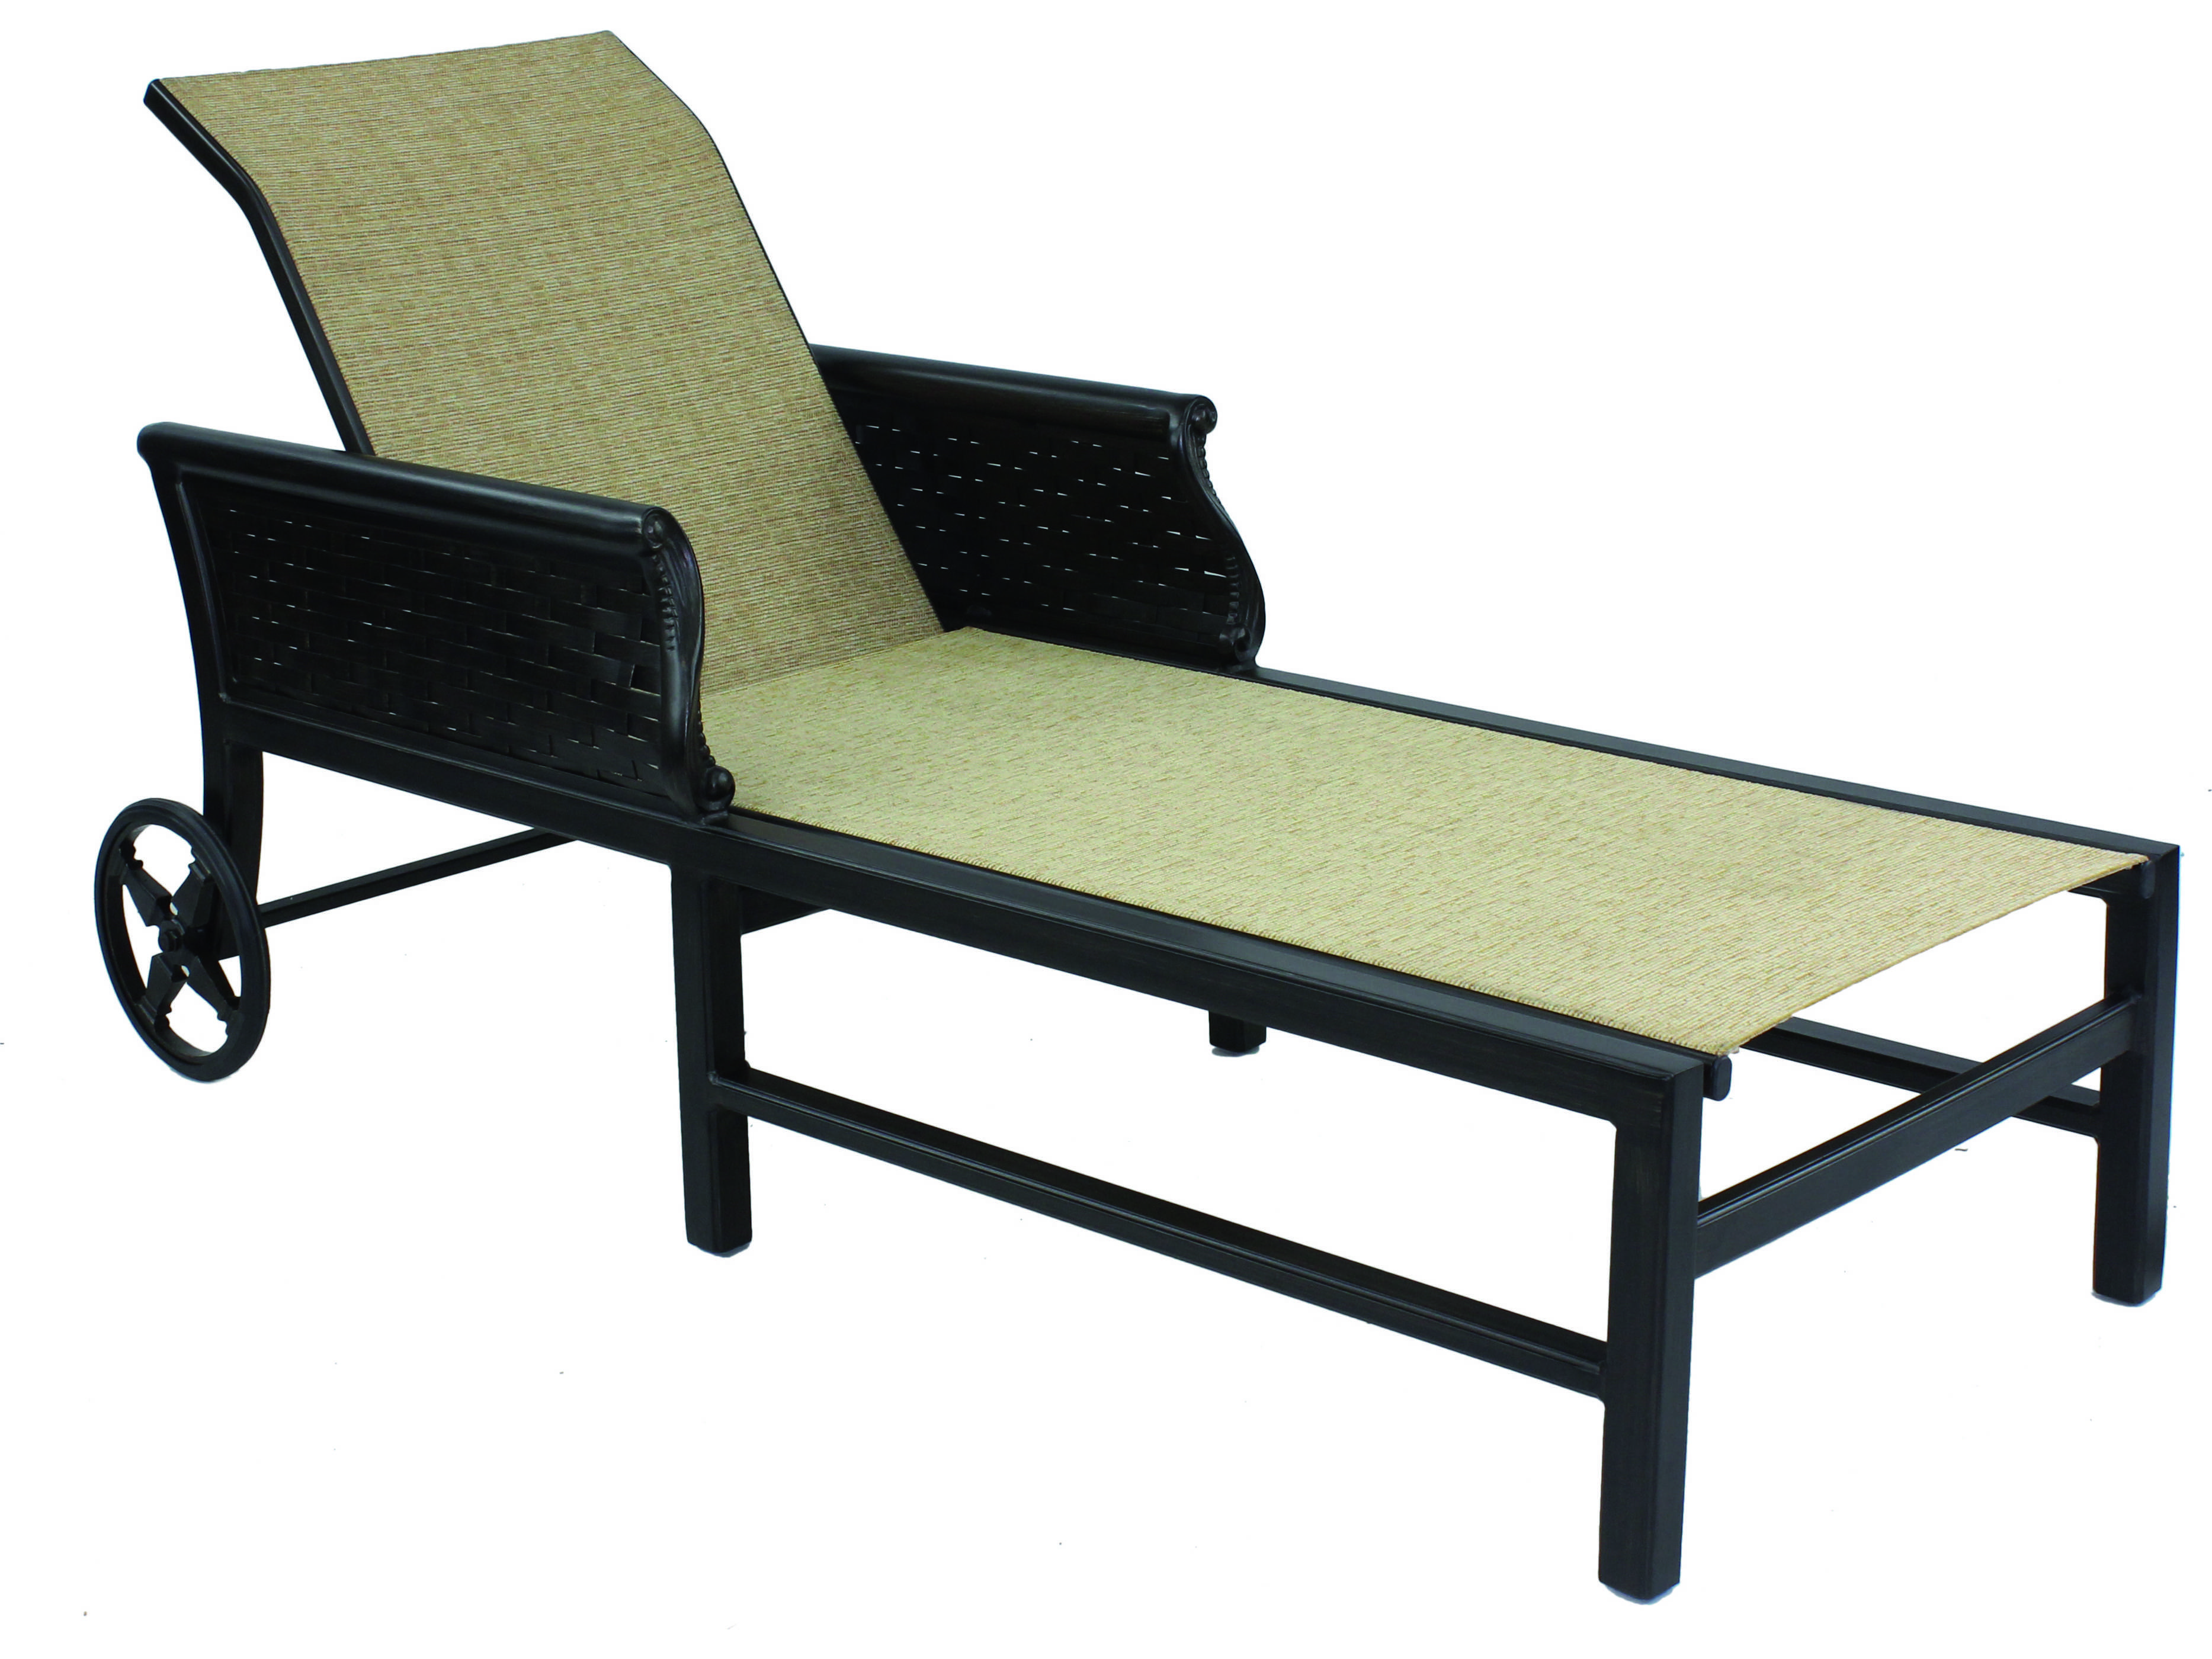 Castelle english garden sling cast aluminum adjustable for Aluminum chaise lounge with wheels